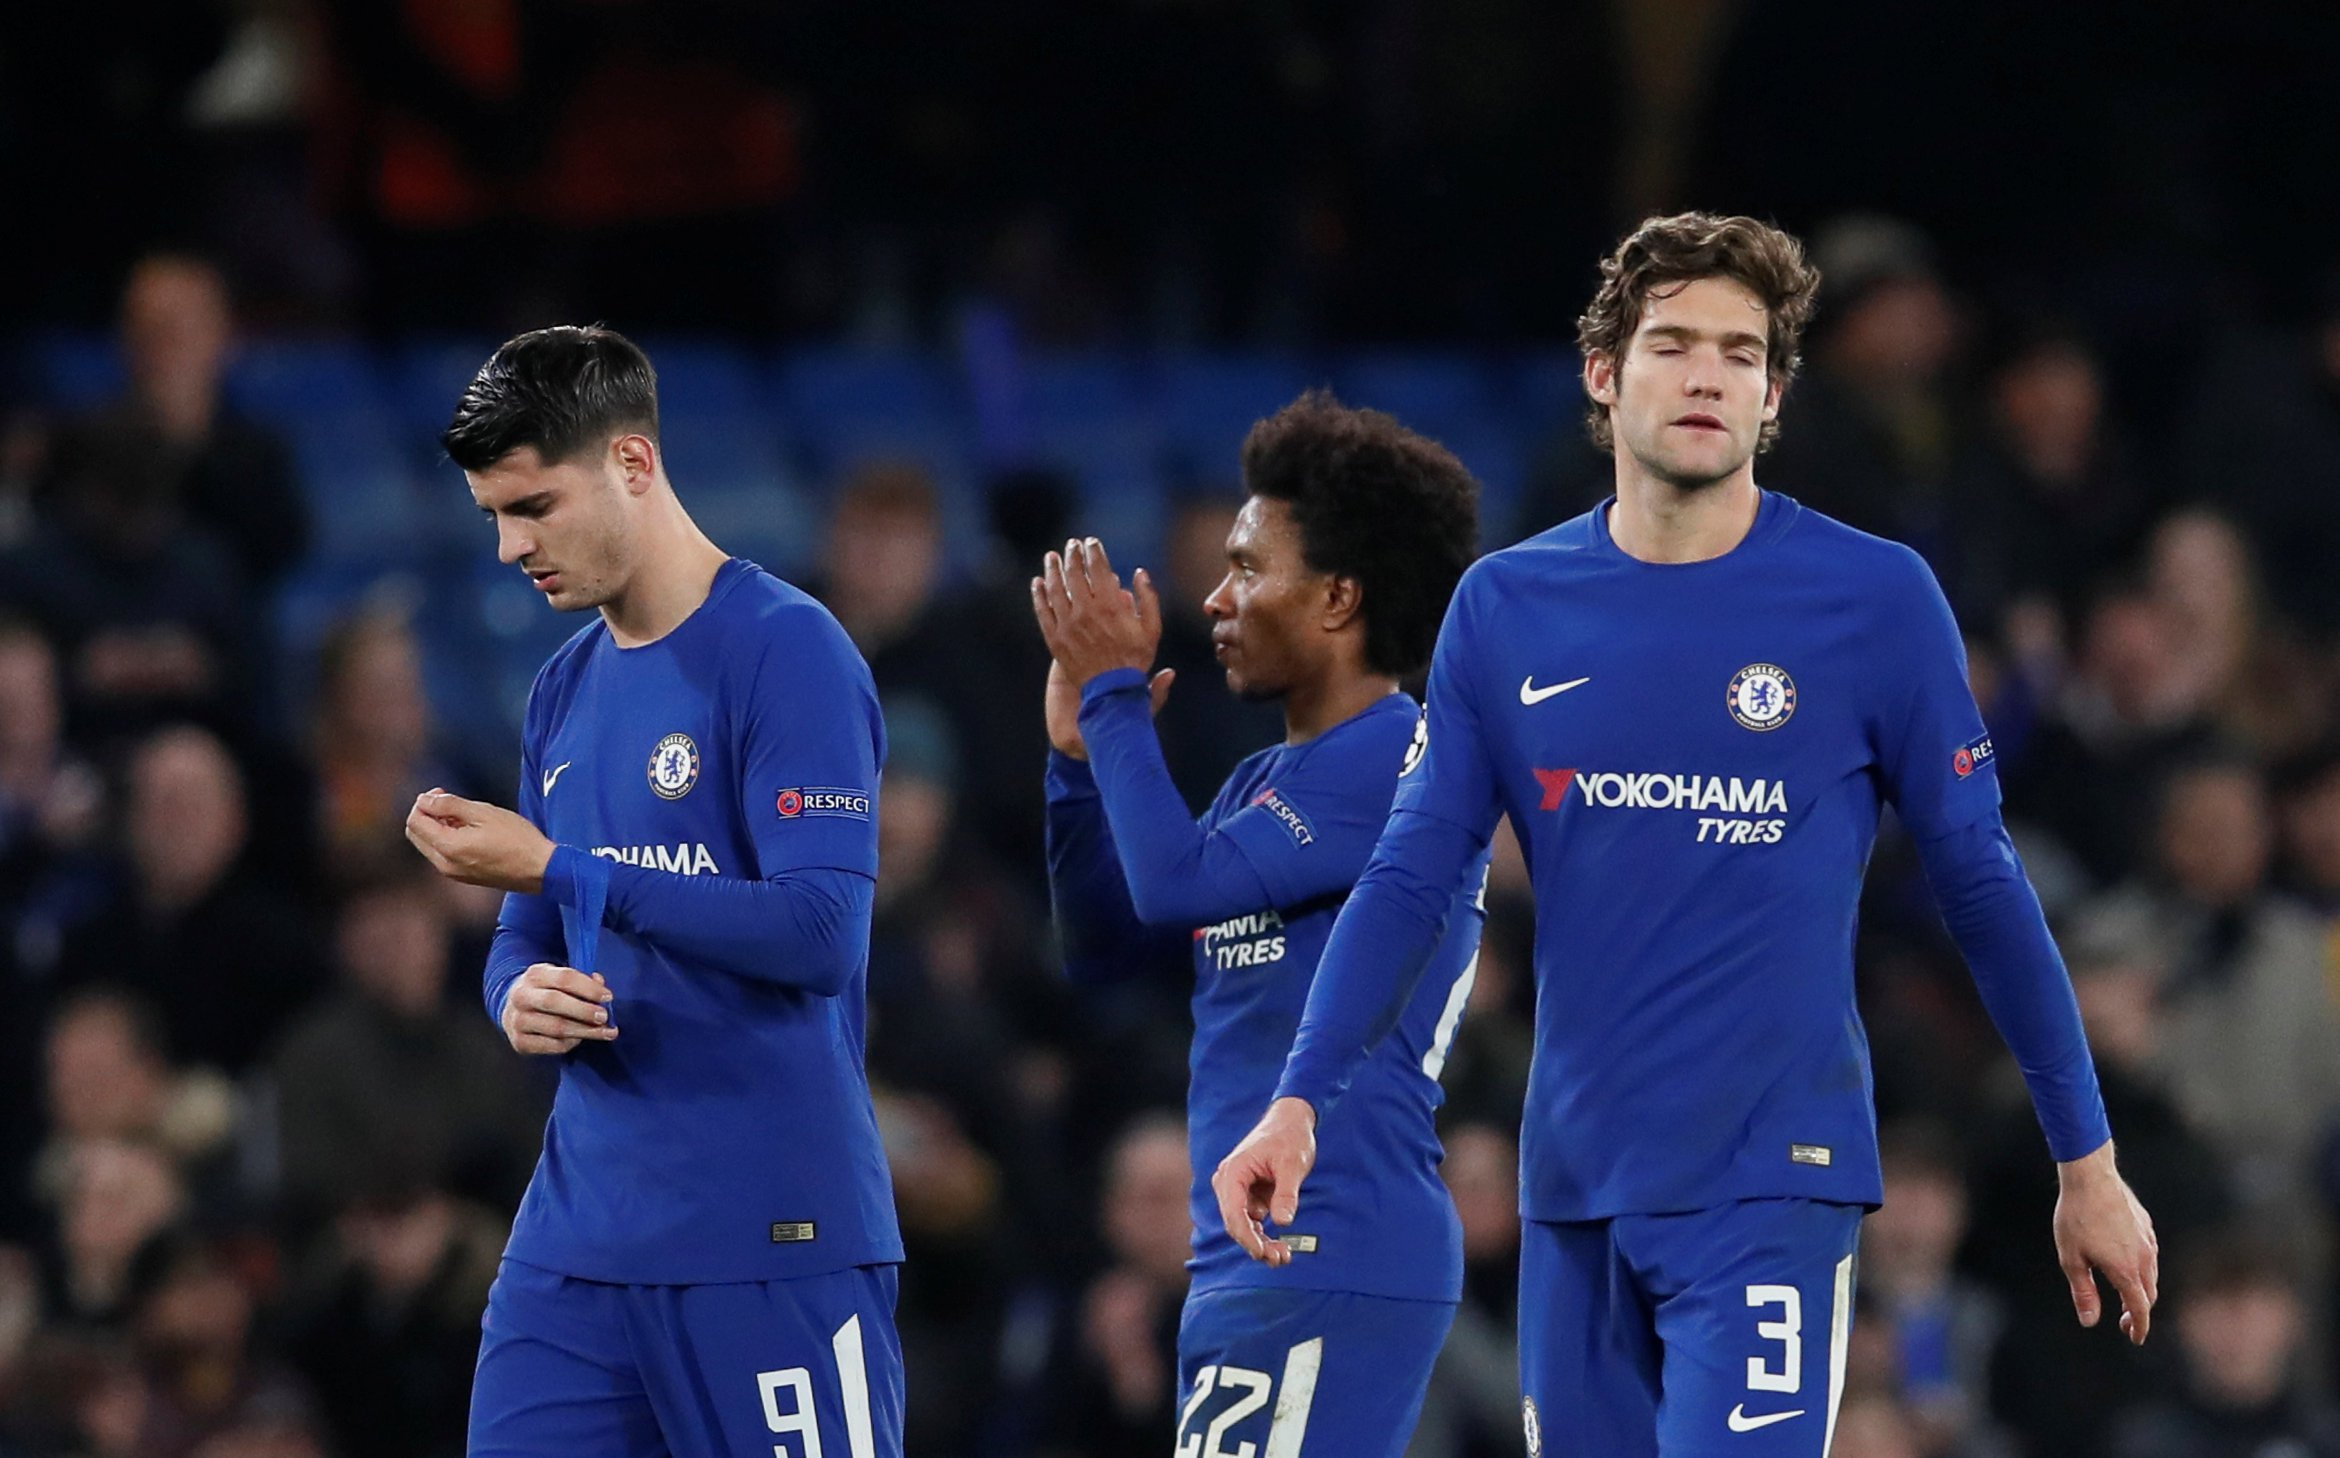 Soccer Football - Champions League Round of 16 First Leg - Chelsea vs FC Barcelona - Stamford Bridge, London, Britain - February 20, 2018 Chelsea's Marcos Alonso, Alvaro Morata and Willian react after the match REUTERS/David Klein